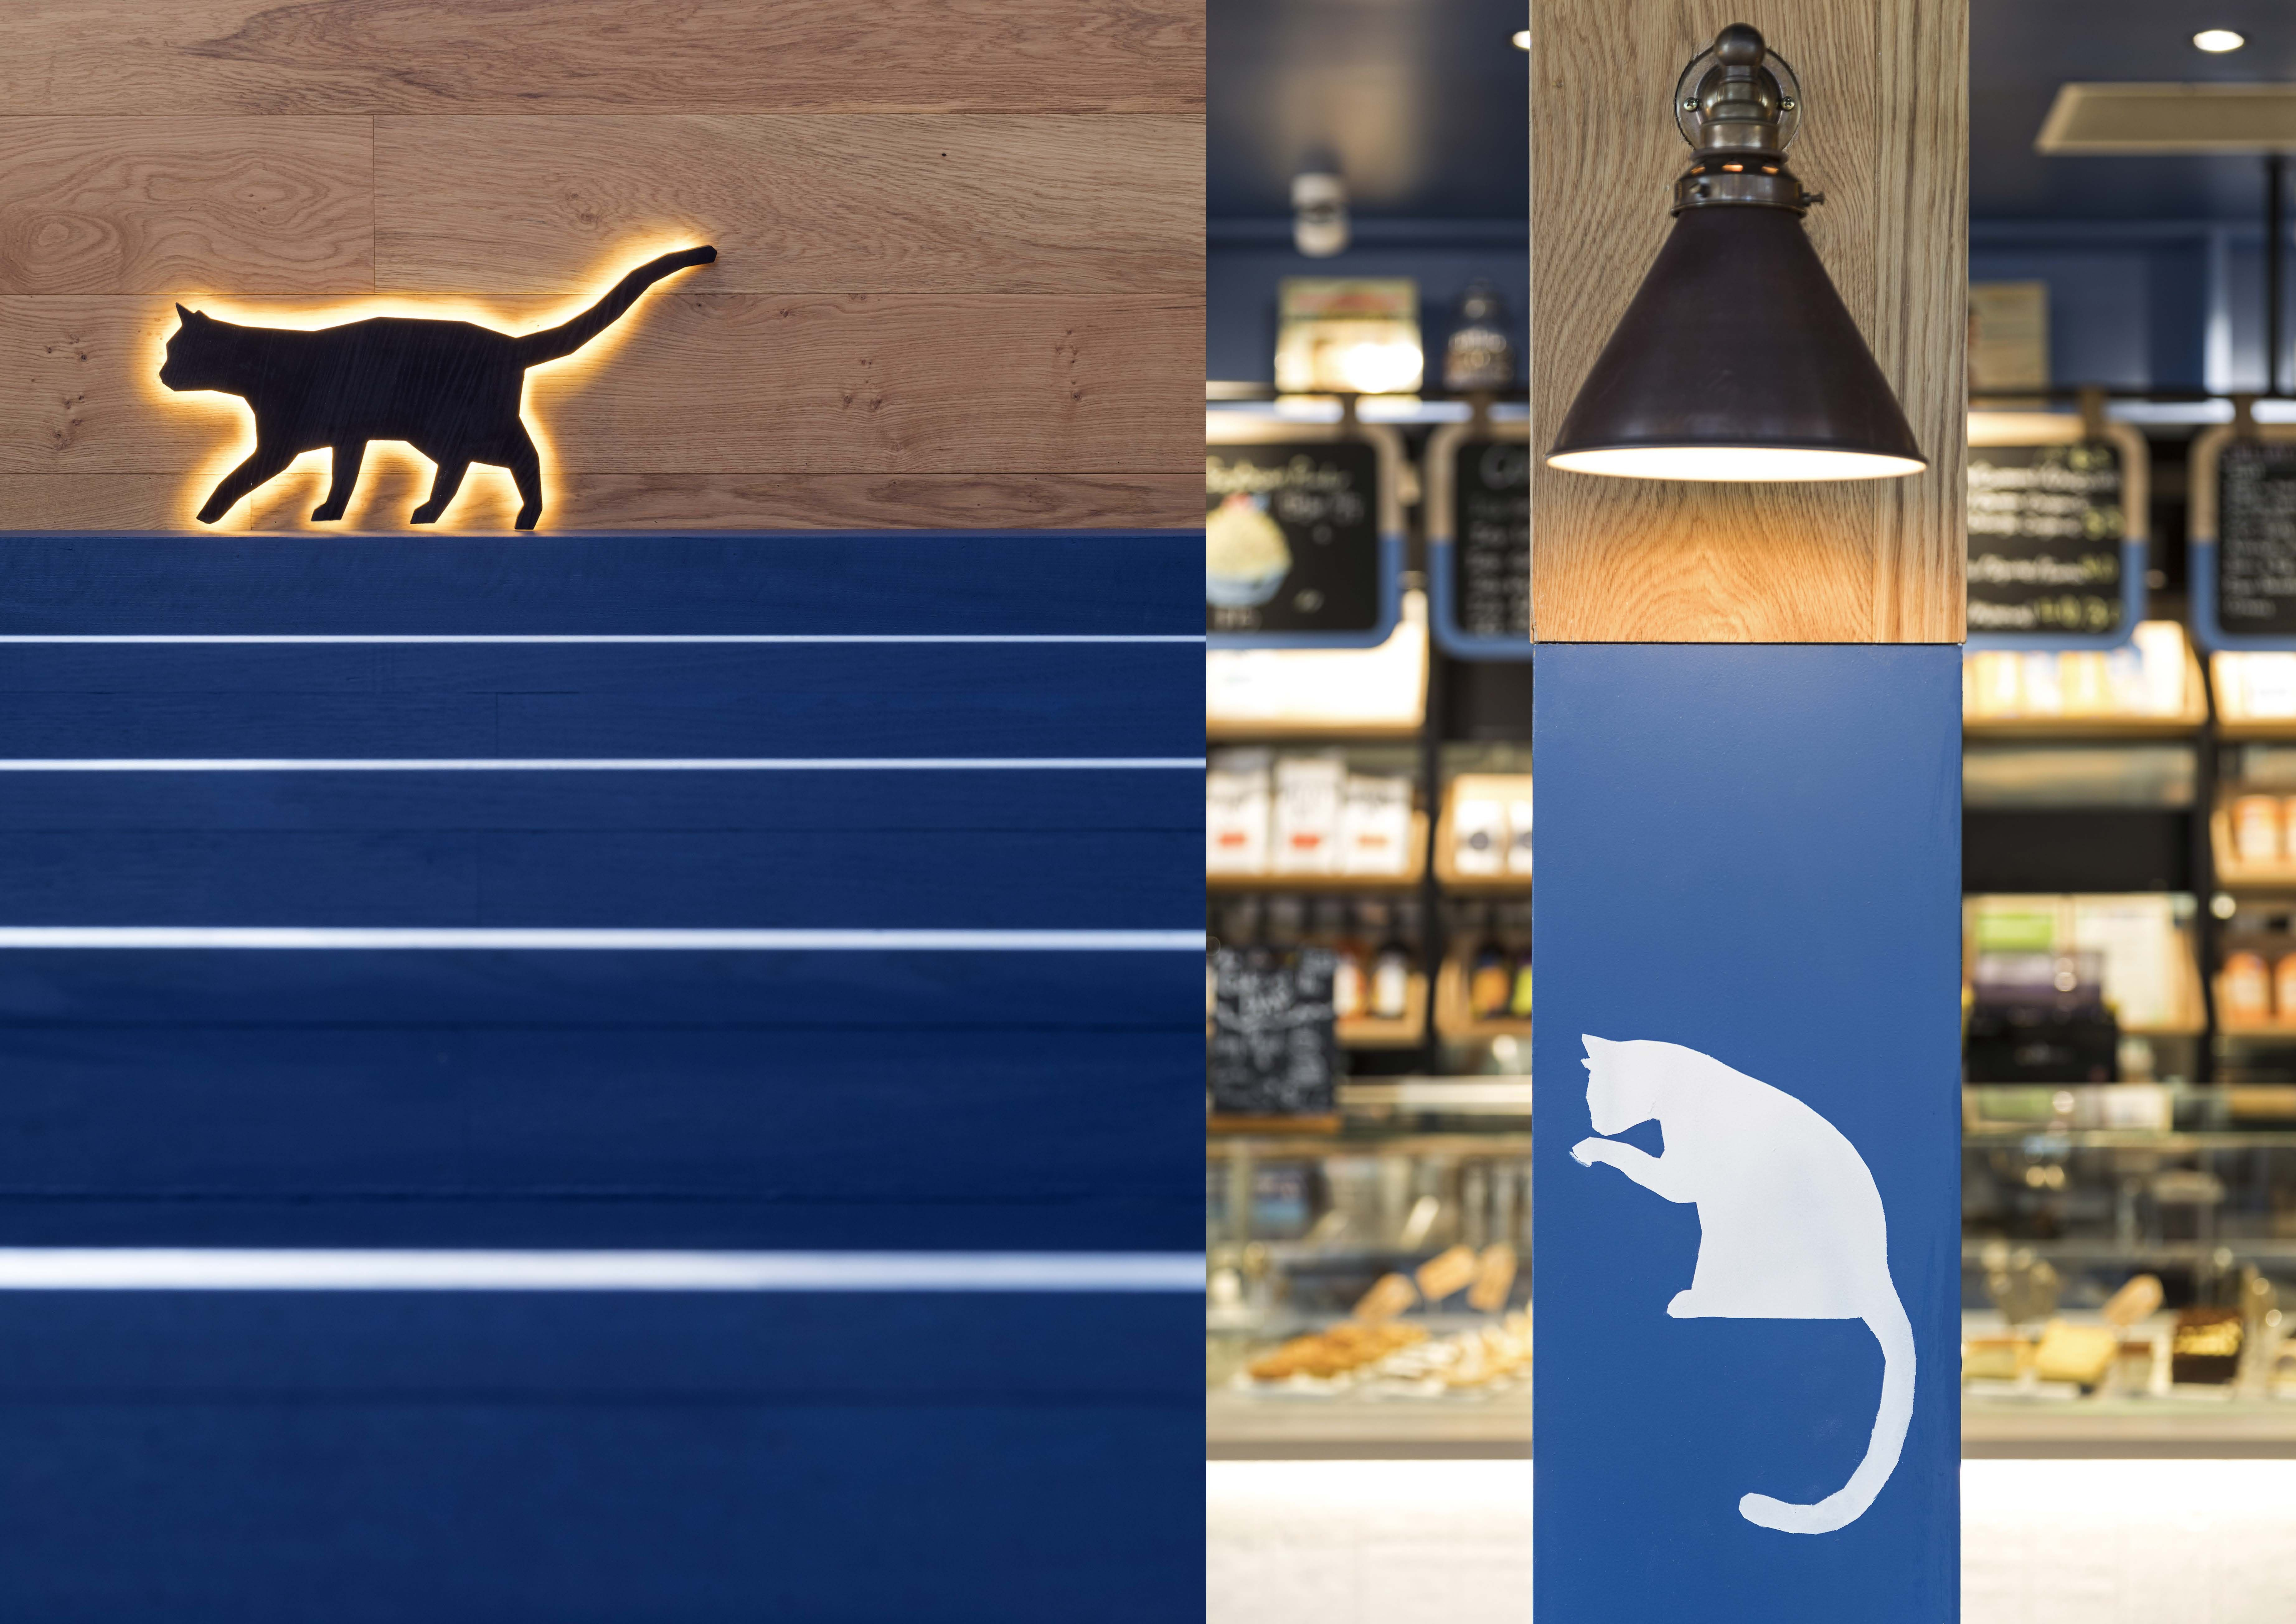 """Design inspiration comes from the name """"Lazy Cat """". Creating a space for all cat lovers and local community to enjoy quality coffee and place to share laughter and stories. #interior #design #retaildesign #retail #hospitality #timber #cafe #architecture #designer #tiles  #shop #cat #lighting #counter #signage #graphicdesign #graphics"""